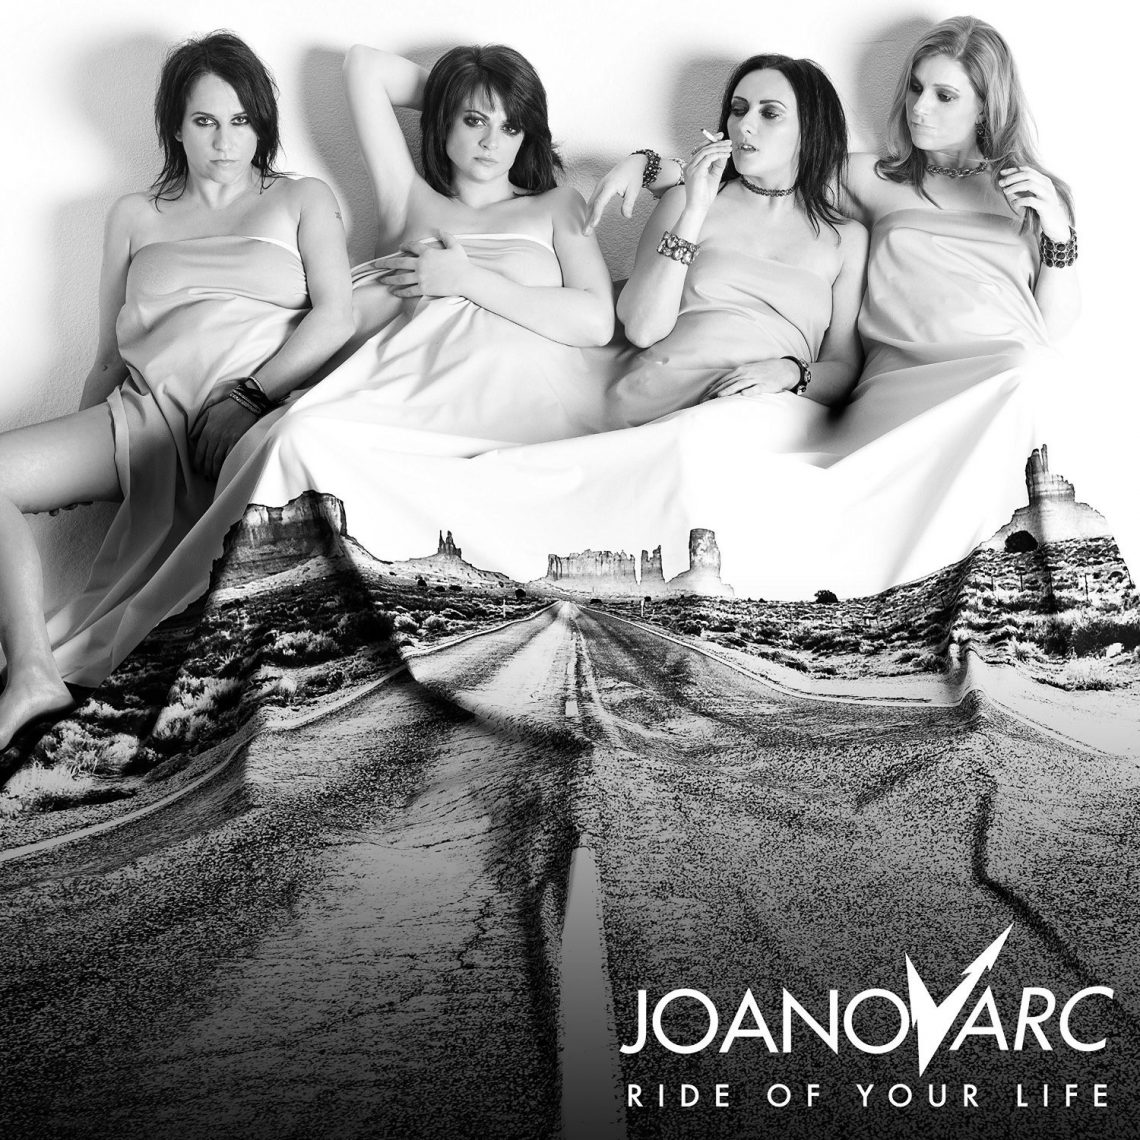 JOANovARC  debut album  Ride Of Your Life  released